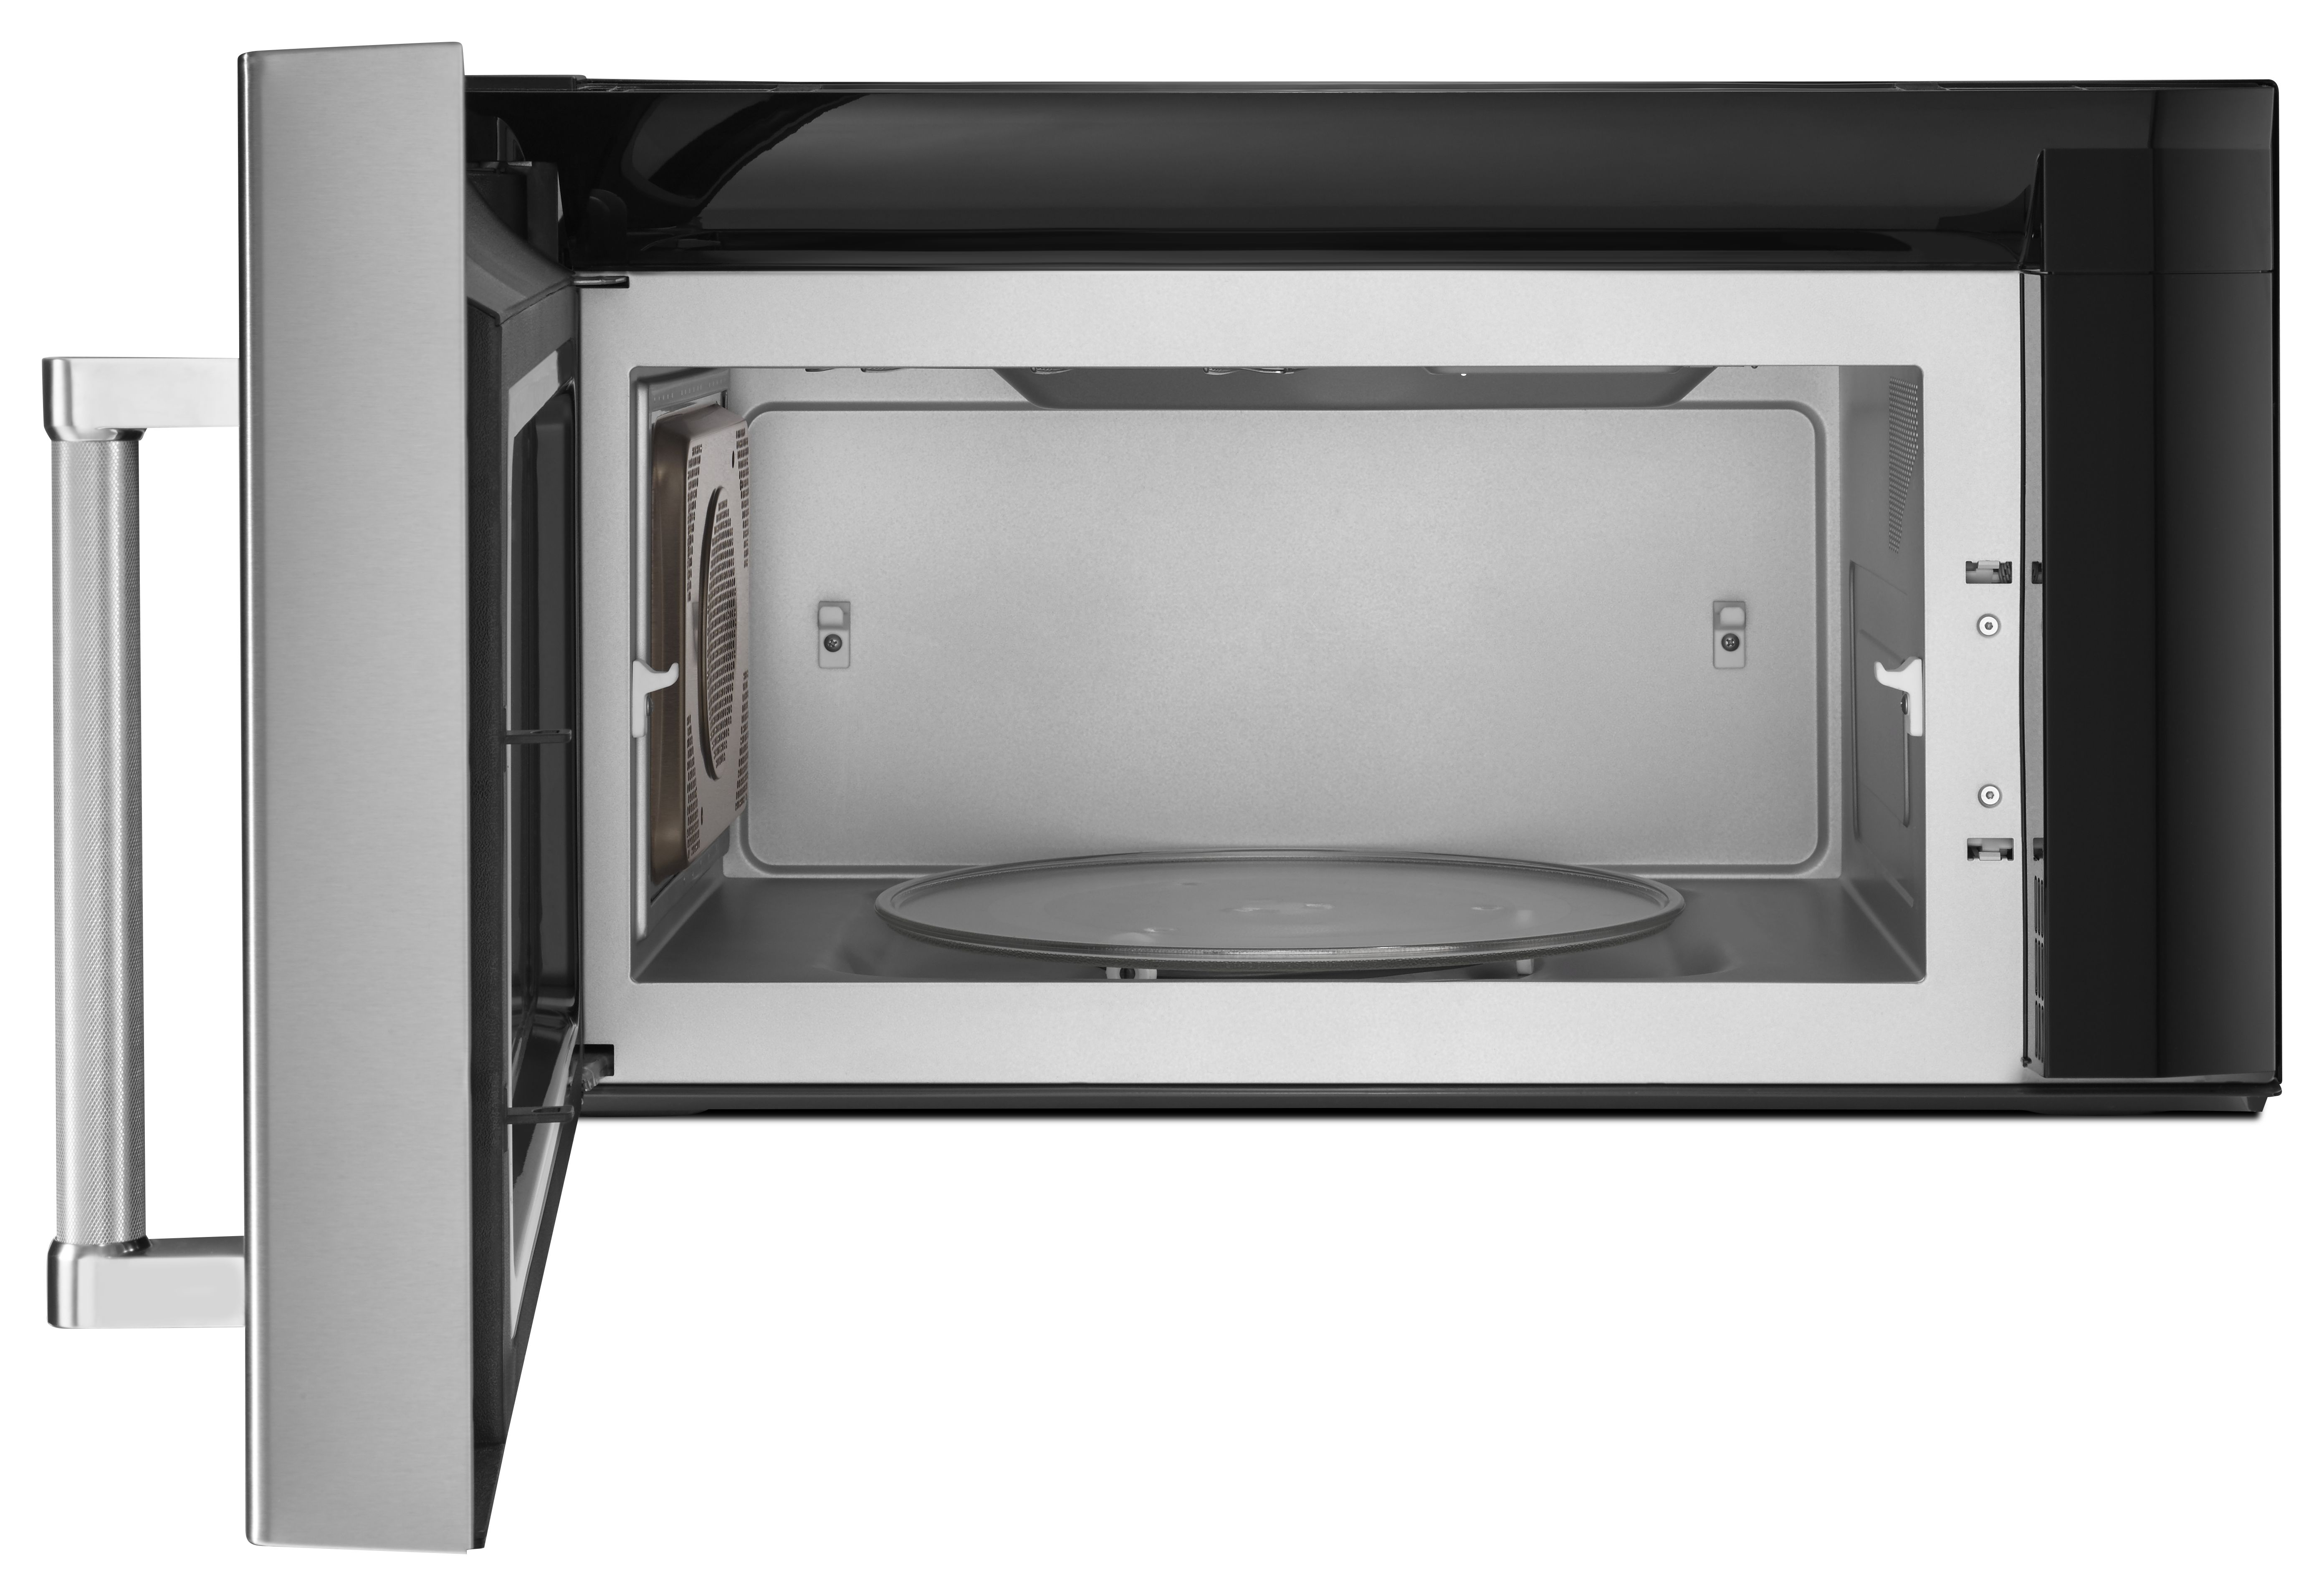 Kitchenaid Over The Range Microwave Stainless Steel Kmhp519ess Home